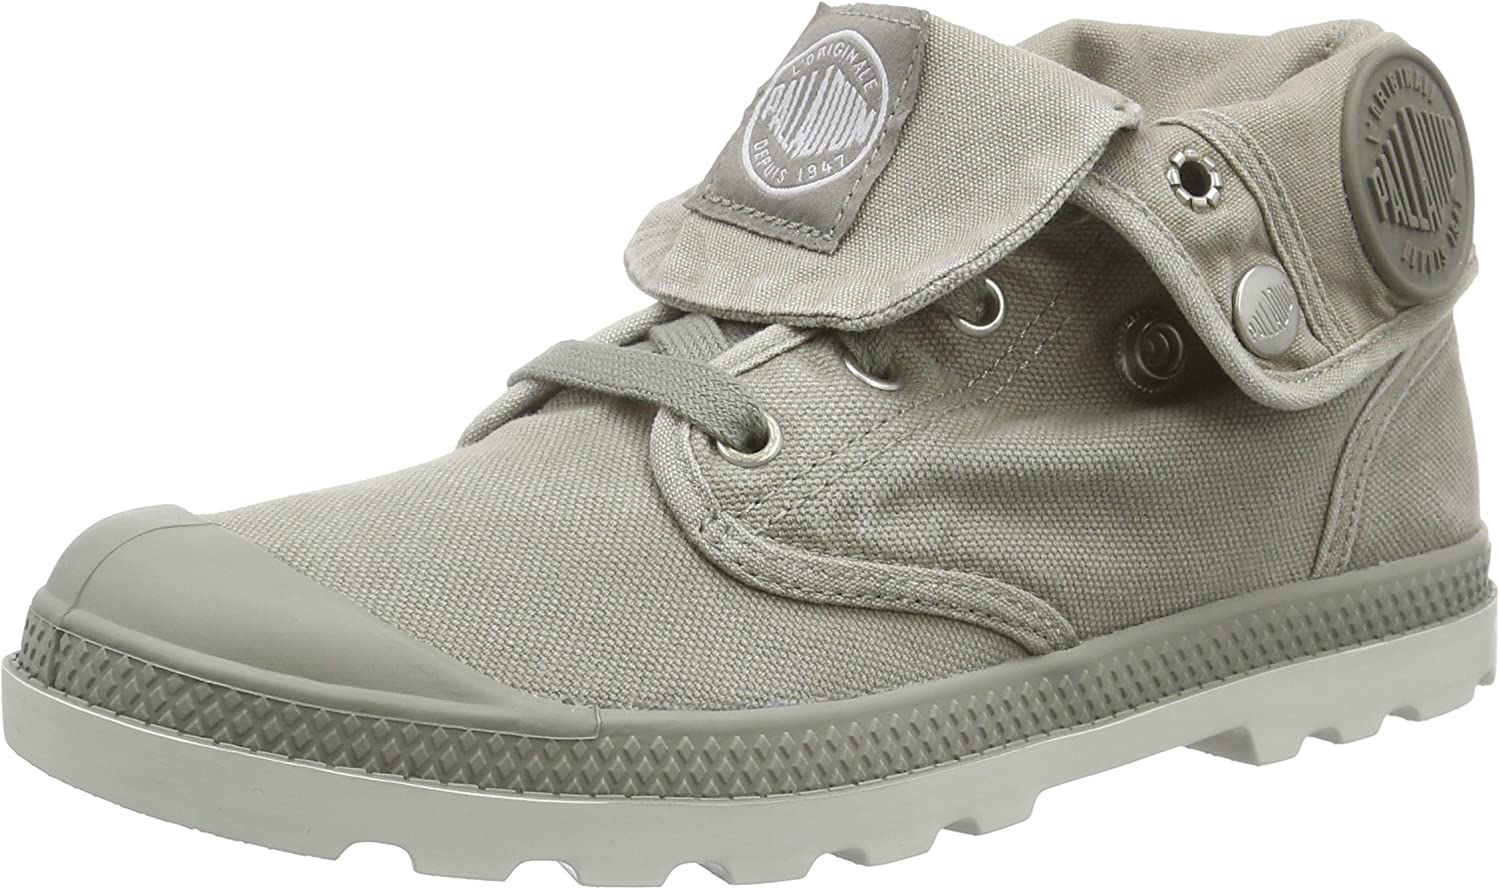 Palladium Women's Baggy Low Lp Ankle Bootie